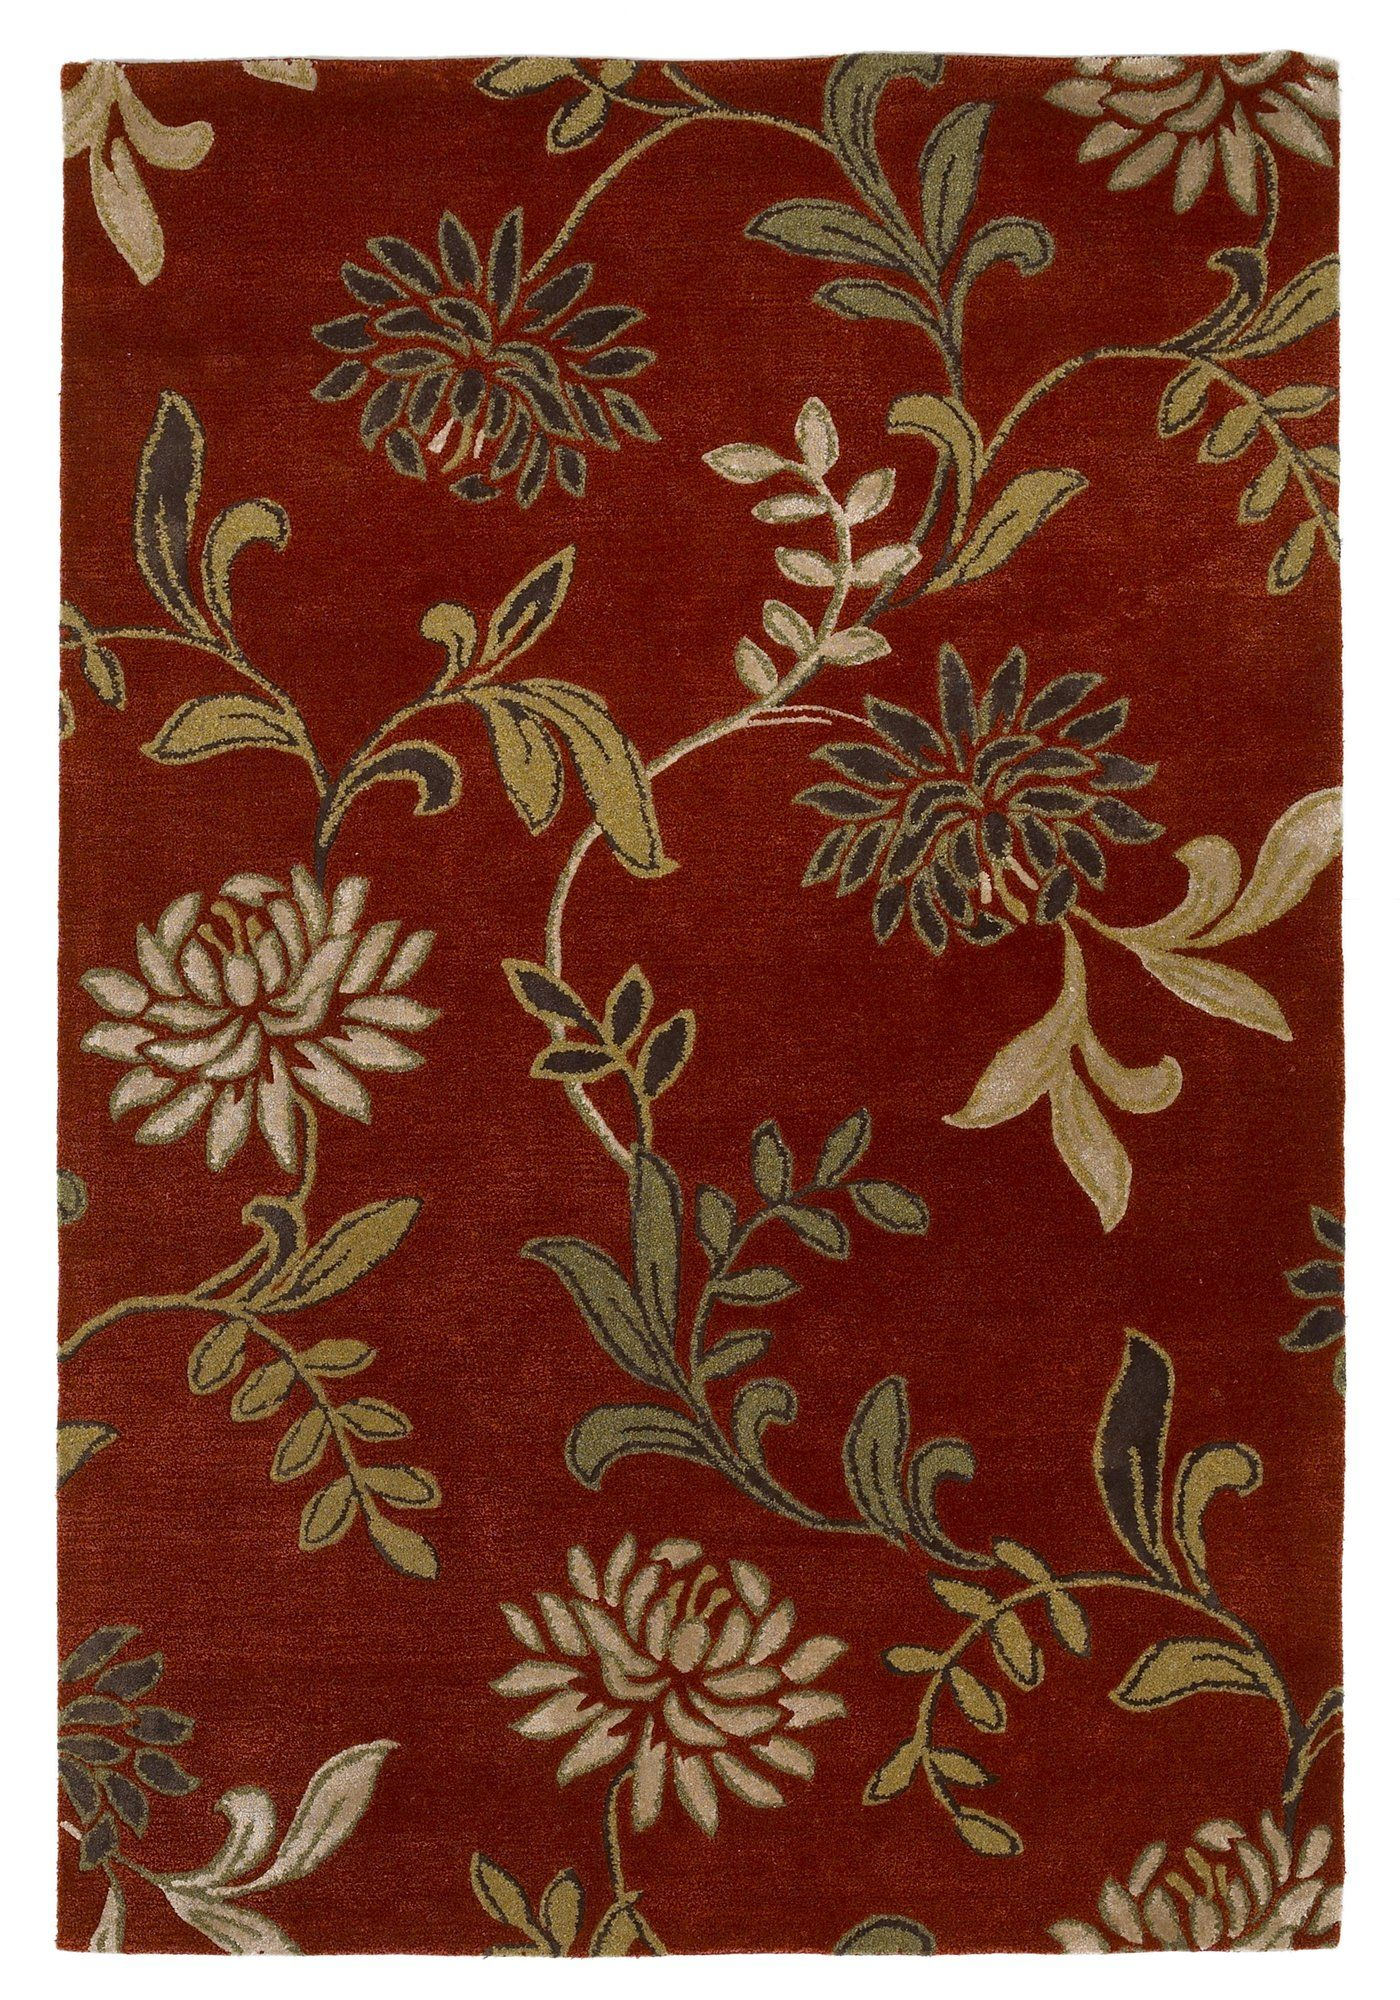 Adkisson Red Floral Area Rug